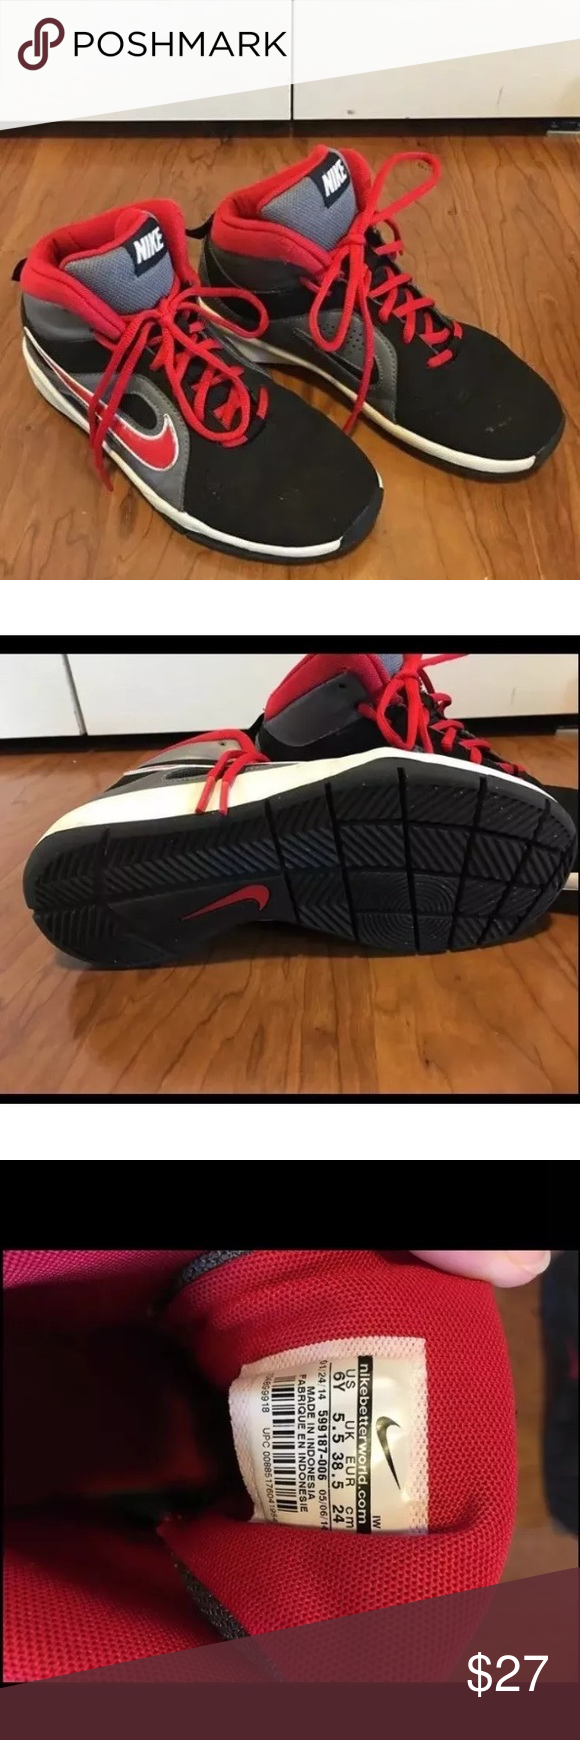 a0f52c57ef7d Nike Team Hustle Boys Basketball Shoes Sz 6y Kids Excellent Condition.  Black Gray Red with Red laces. Nike Team Hustle D6 boys basketball shoes  size 6y Nike ...